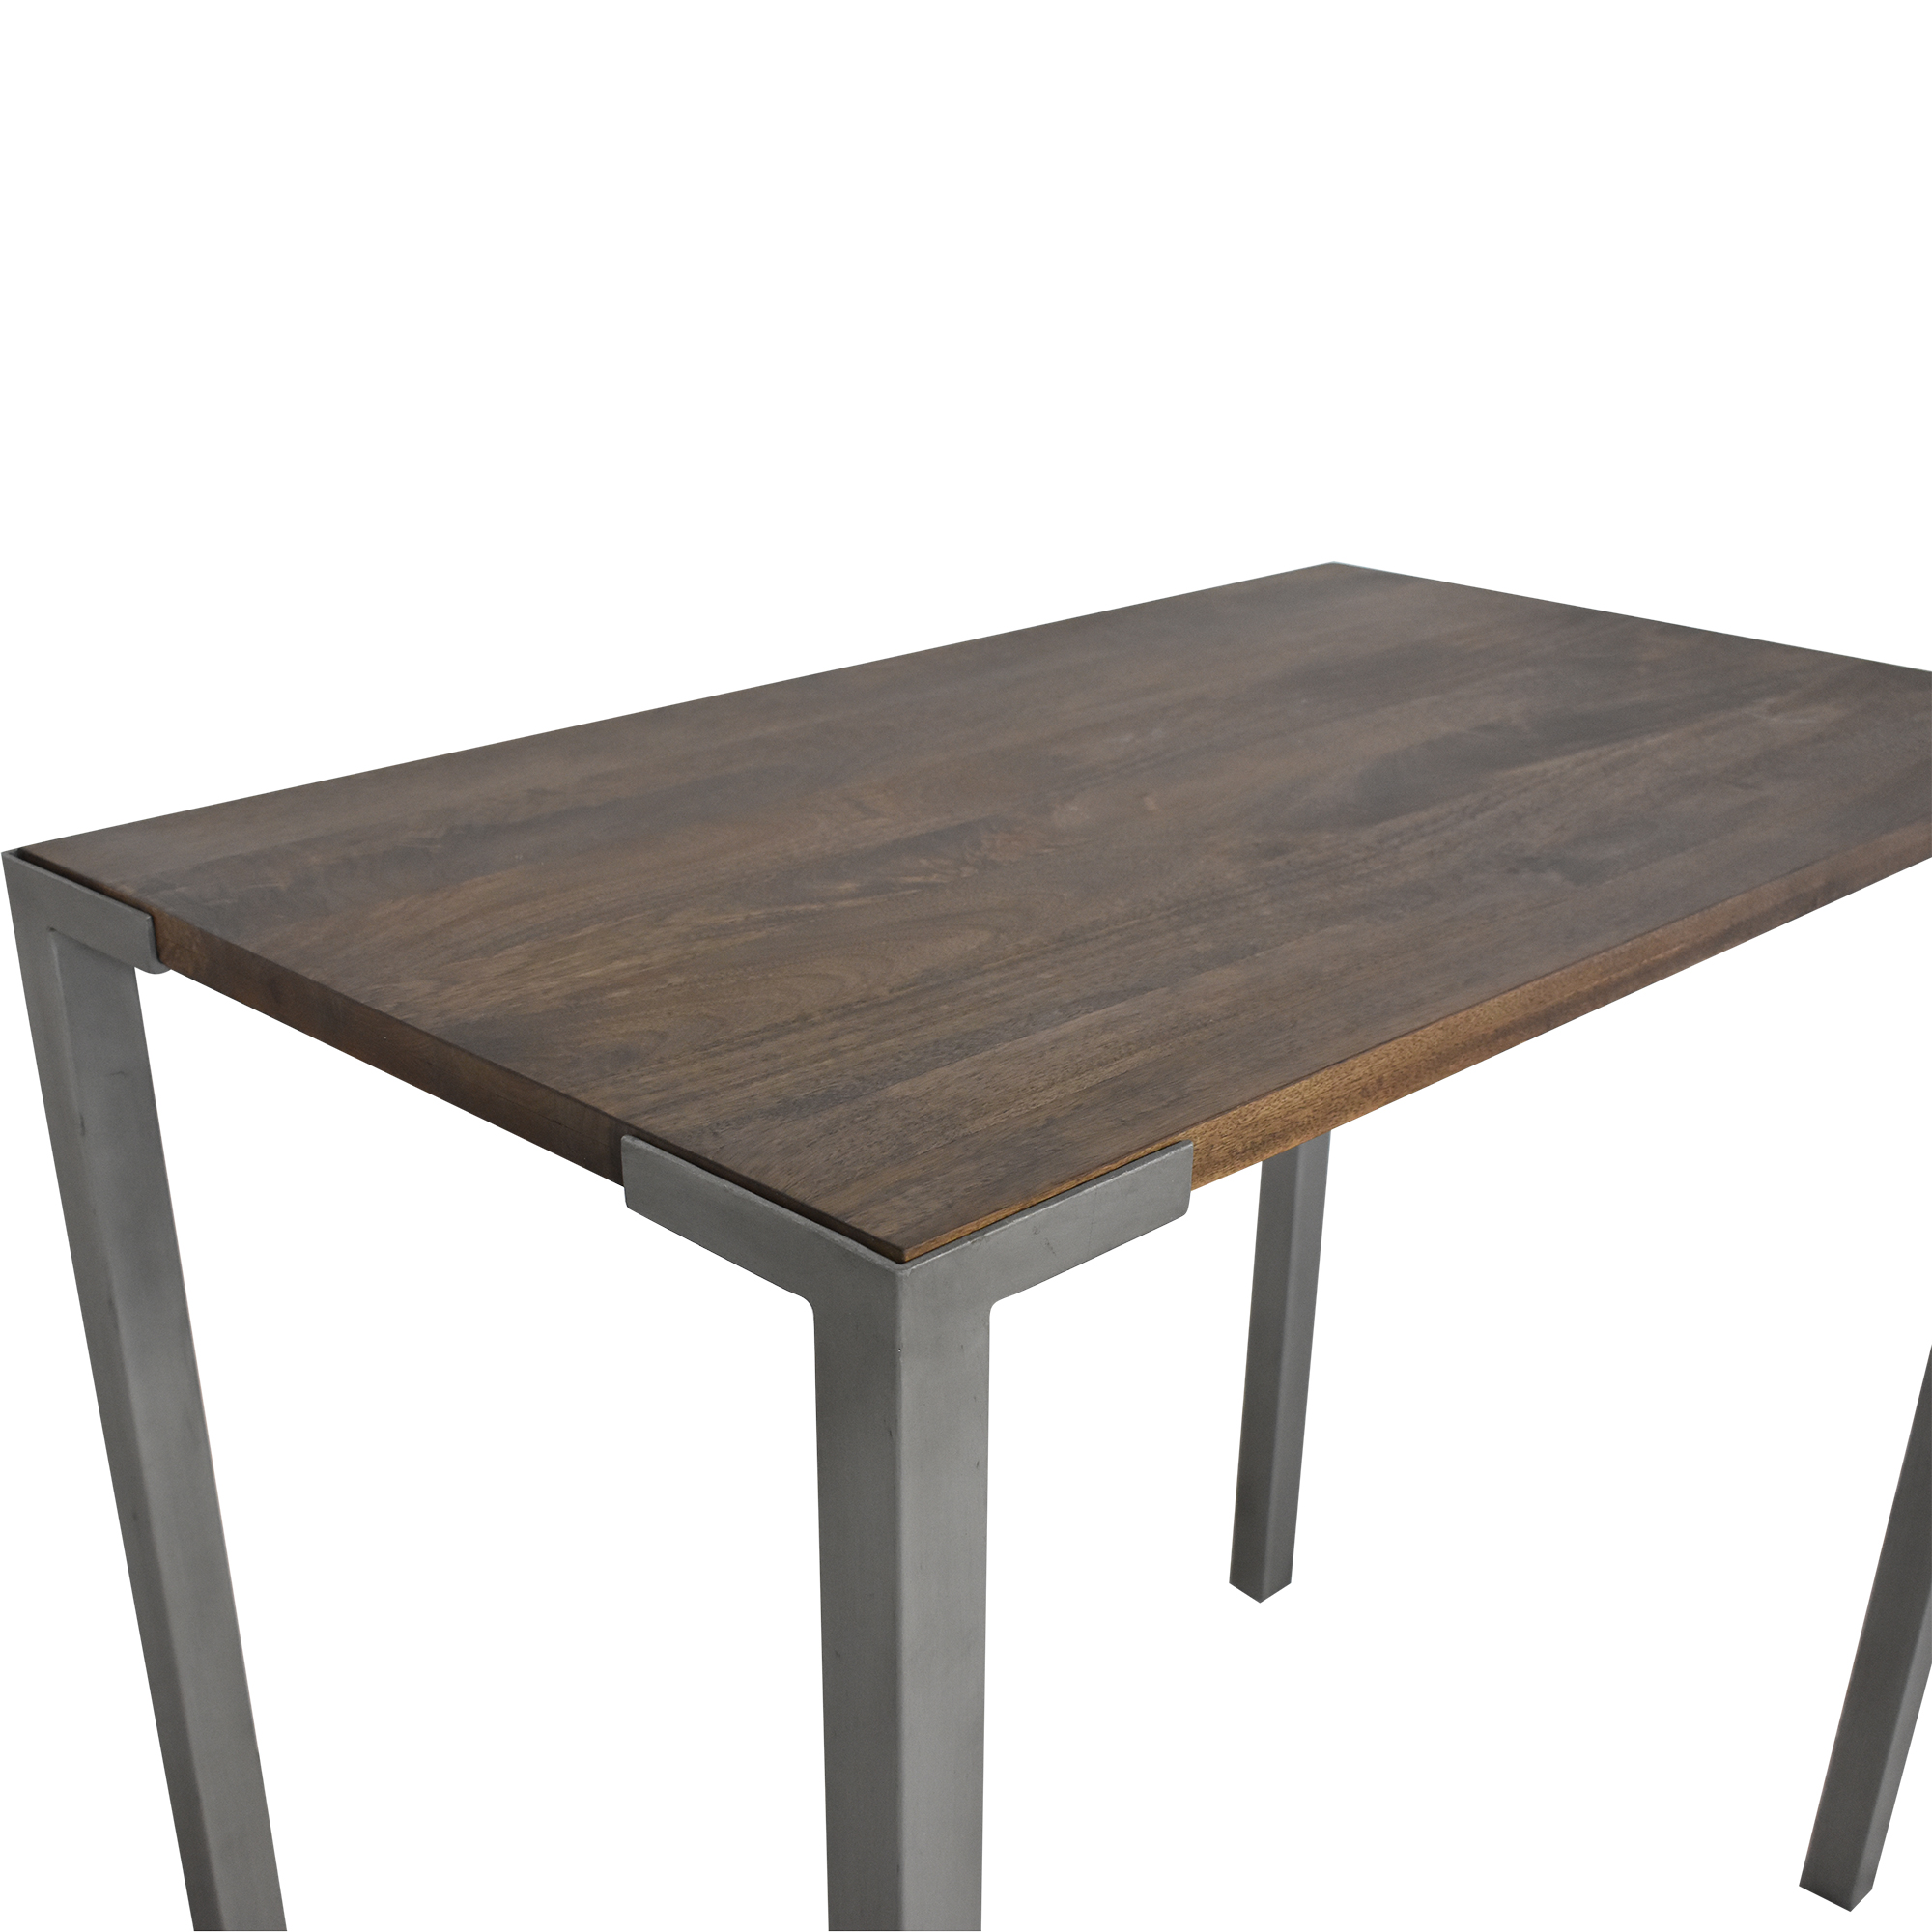 CB2 CB2 Stilt High Dining Table Tables